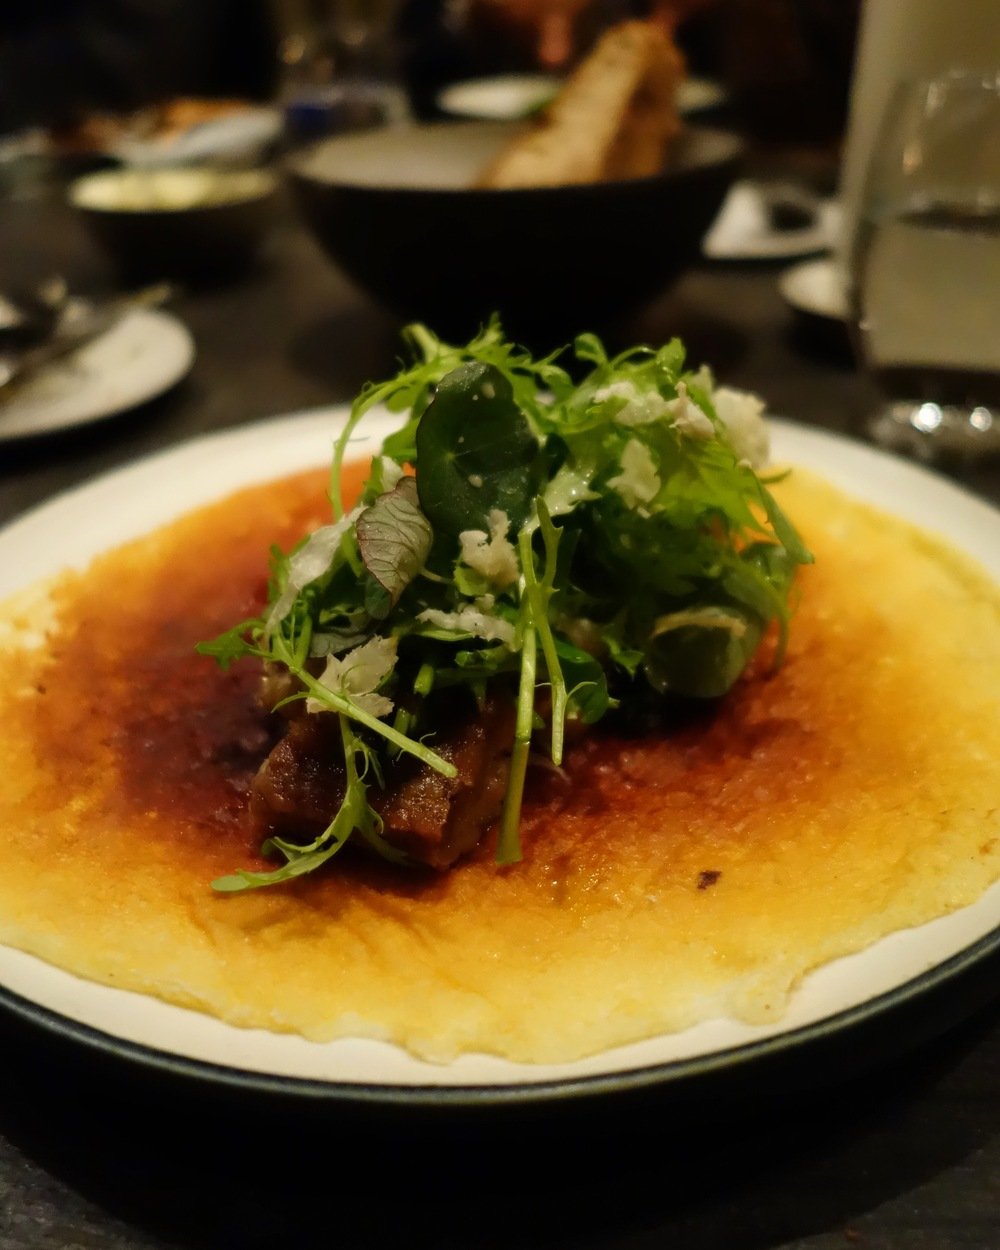 Caramelized milk skin with sautéed pigs tails and cress. The skin is made entirely from milk cooked in a pan. It's takes about 1 out of 10 tries to nail down the technique for the caramelization, which also involves spraying water in the process to prevent it from burning.